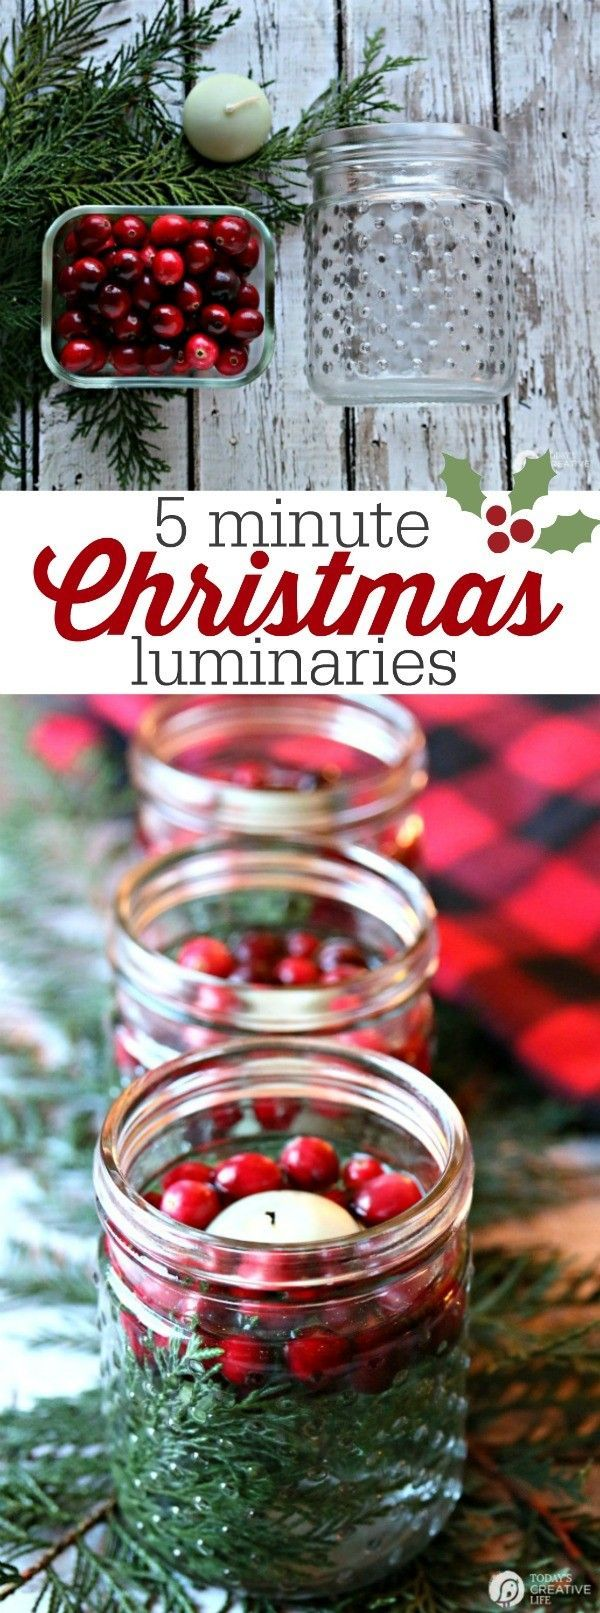 Diy christmas party decorations - 5 Minute Cranberry Cedar Christmas Luminaries